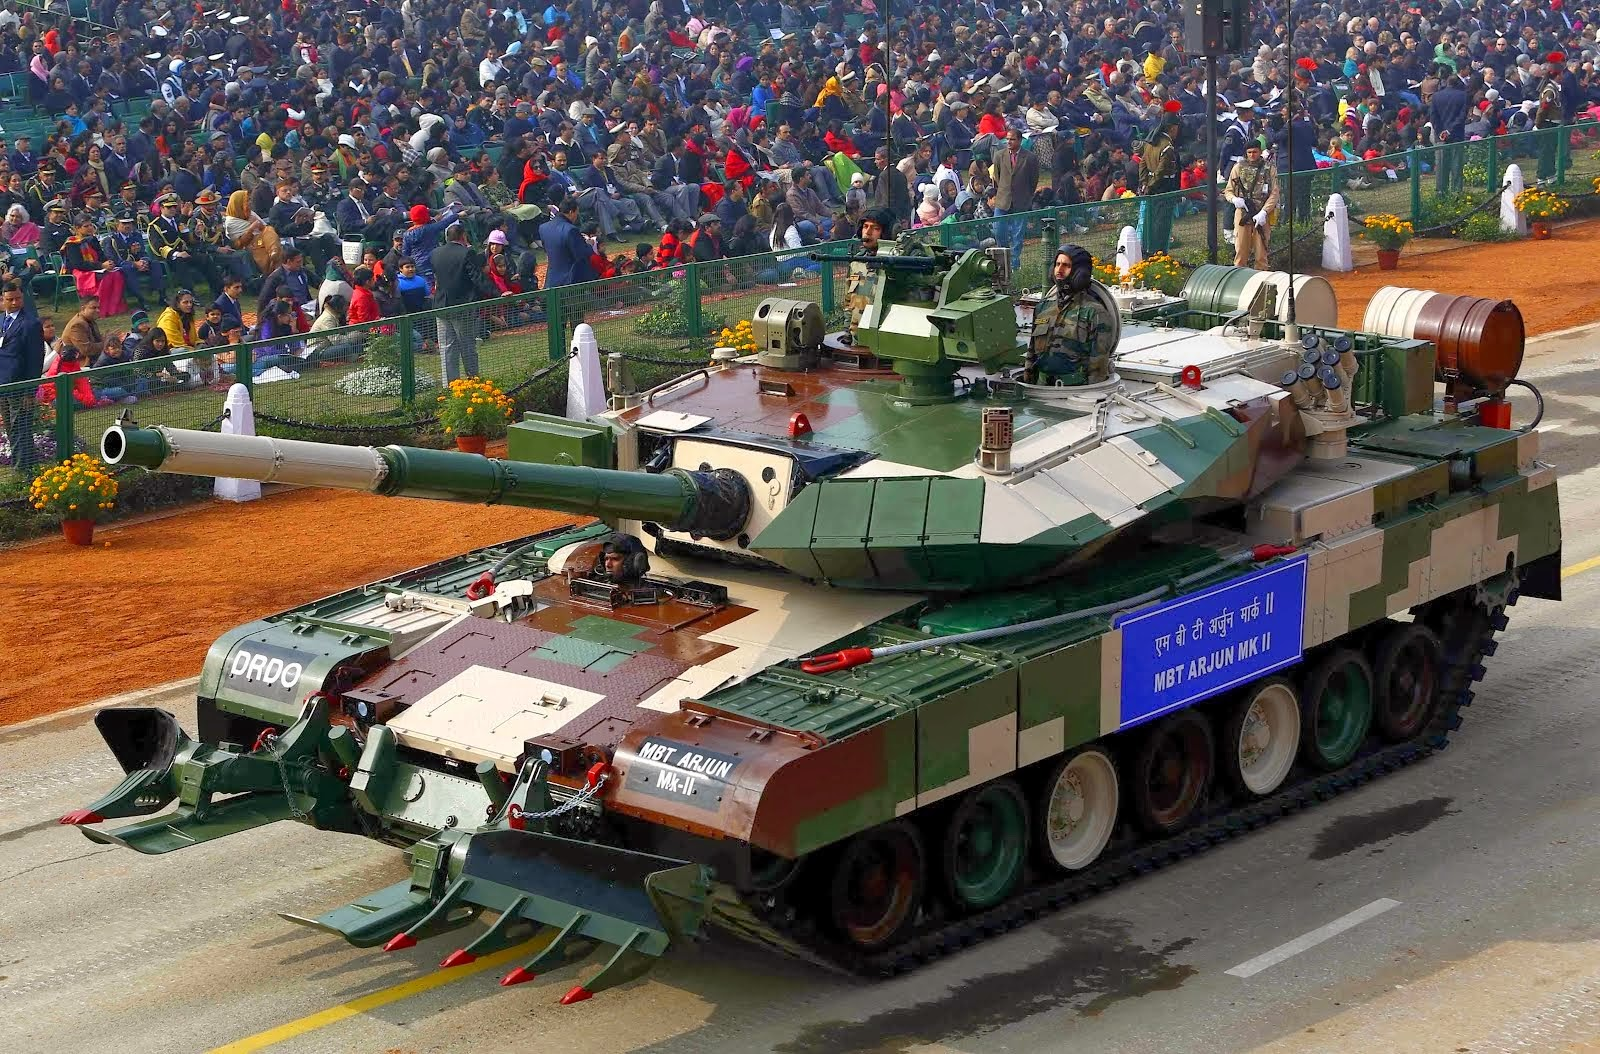 Army tank in parade 26th january wallpaper